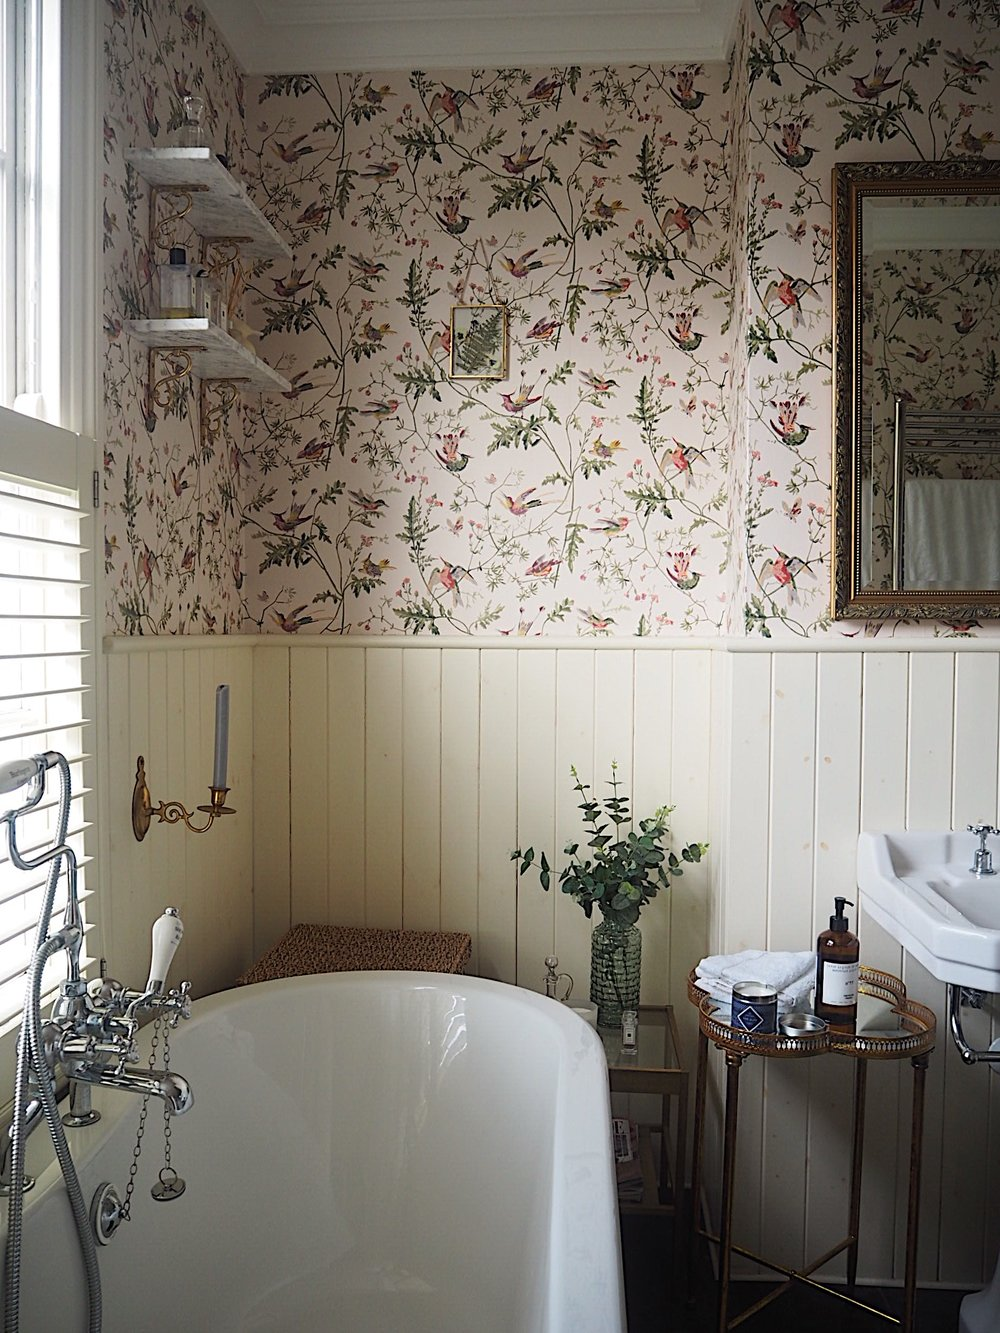 Mini Bathroom Makeover: Using Wallpaper In The Bathroom